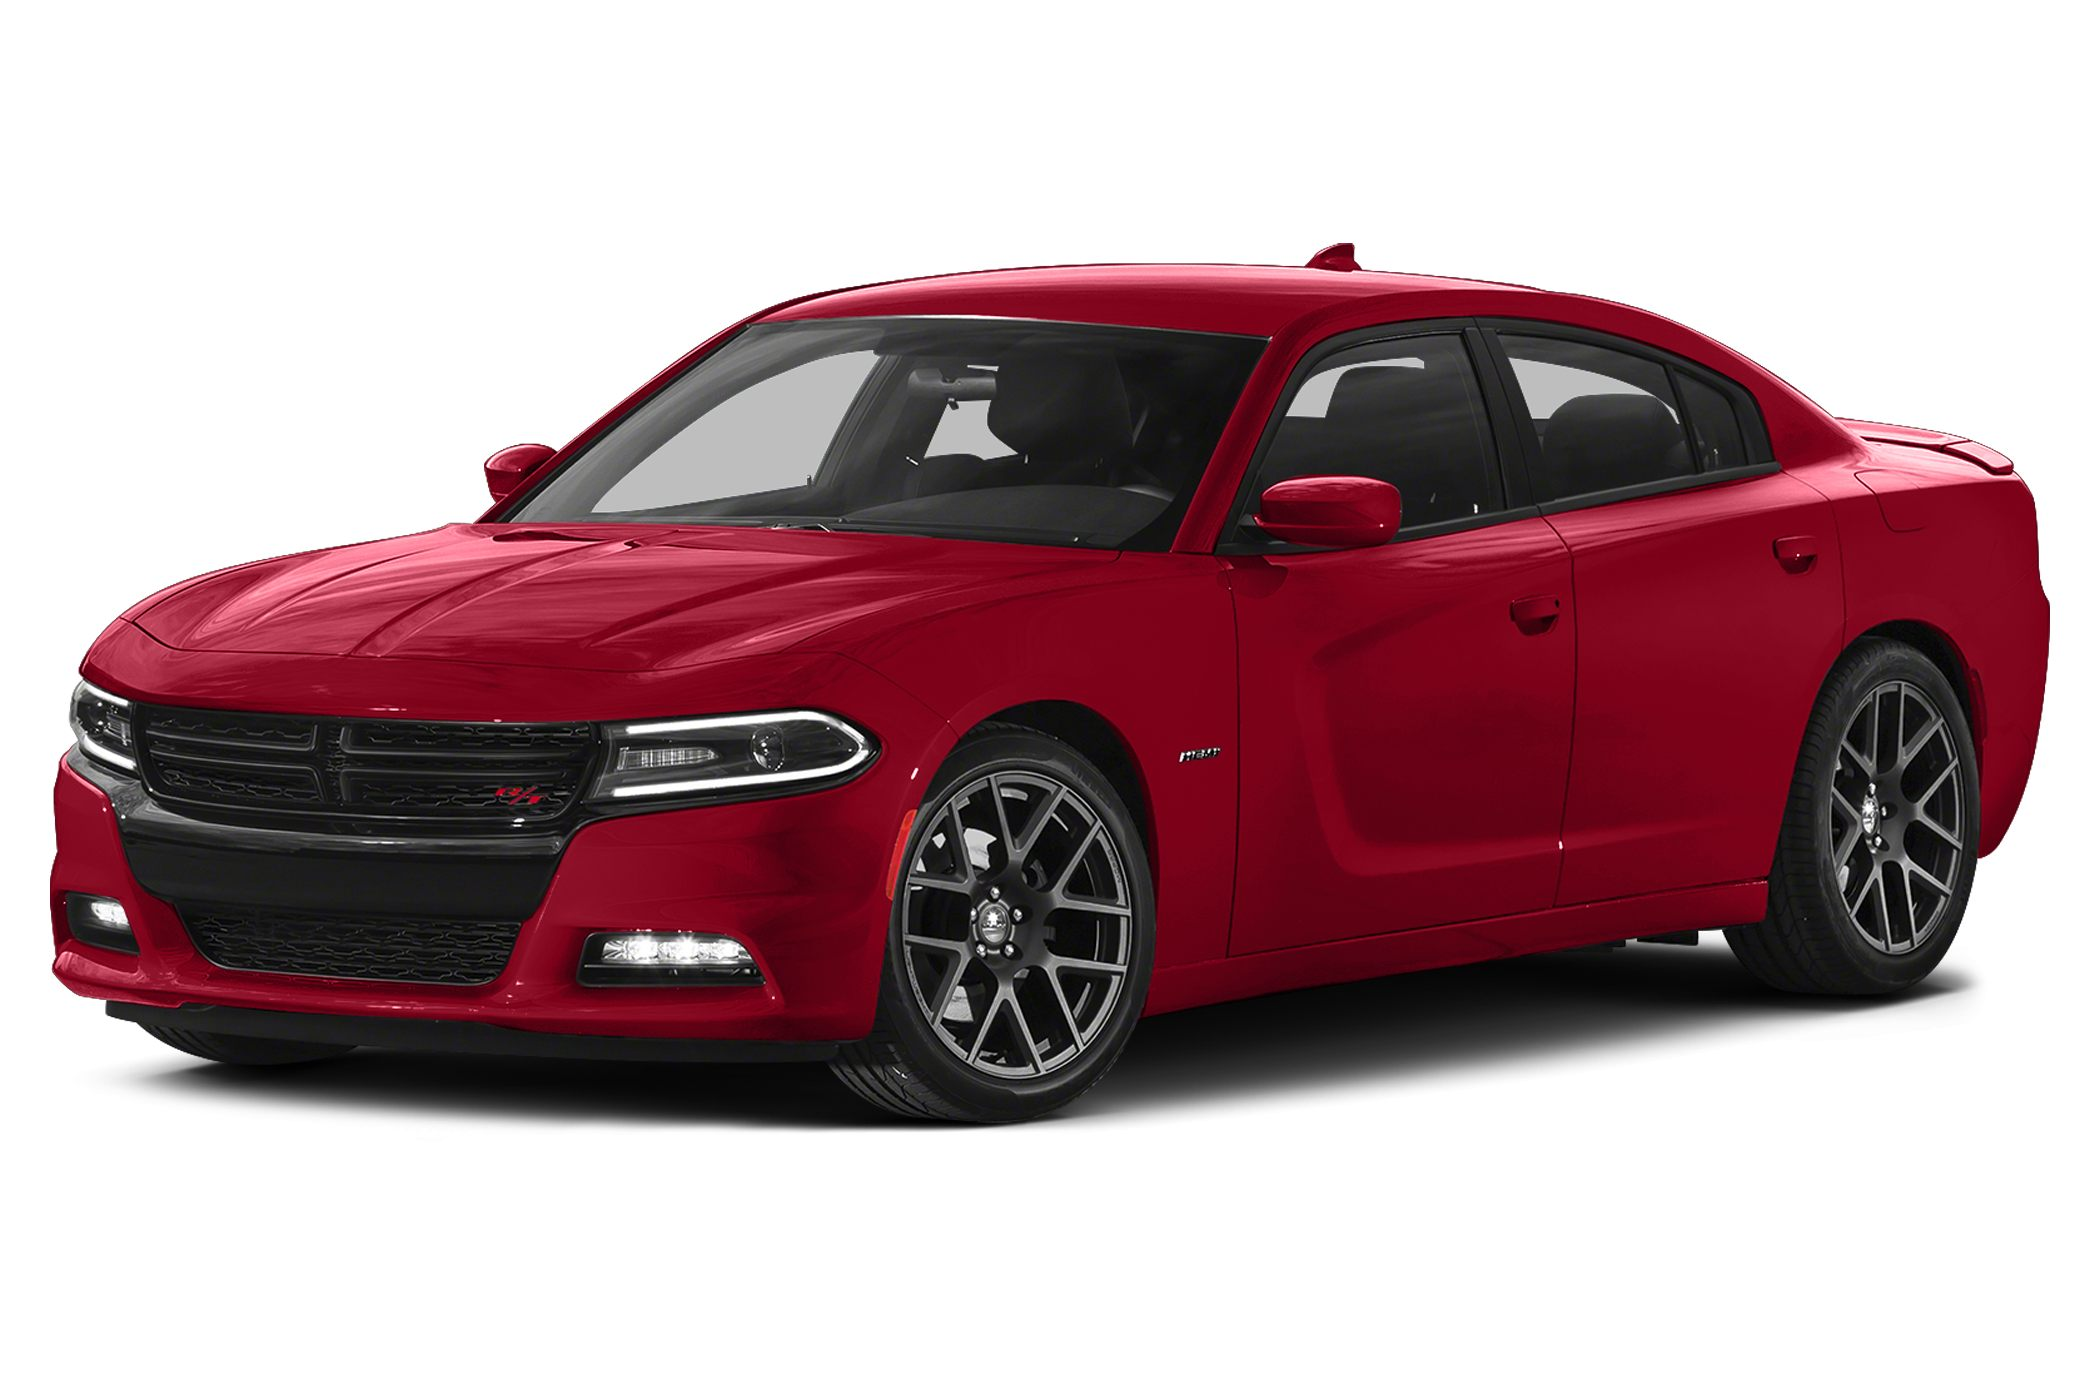 2015 Dodge Charger SE Sedan for sale in Tahlequah for $28,990 with 10 miles